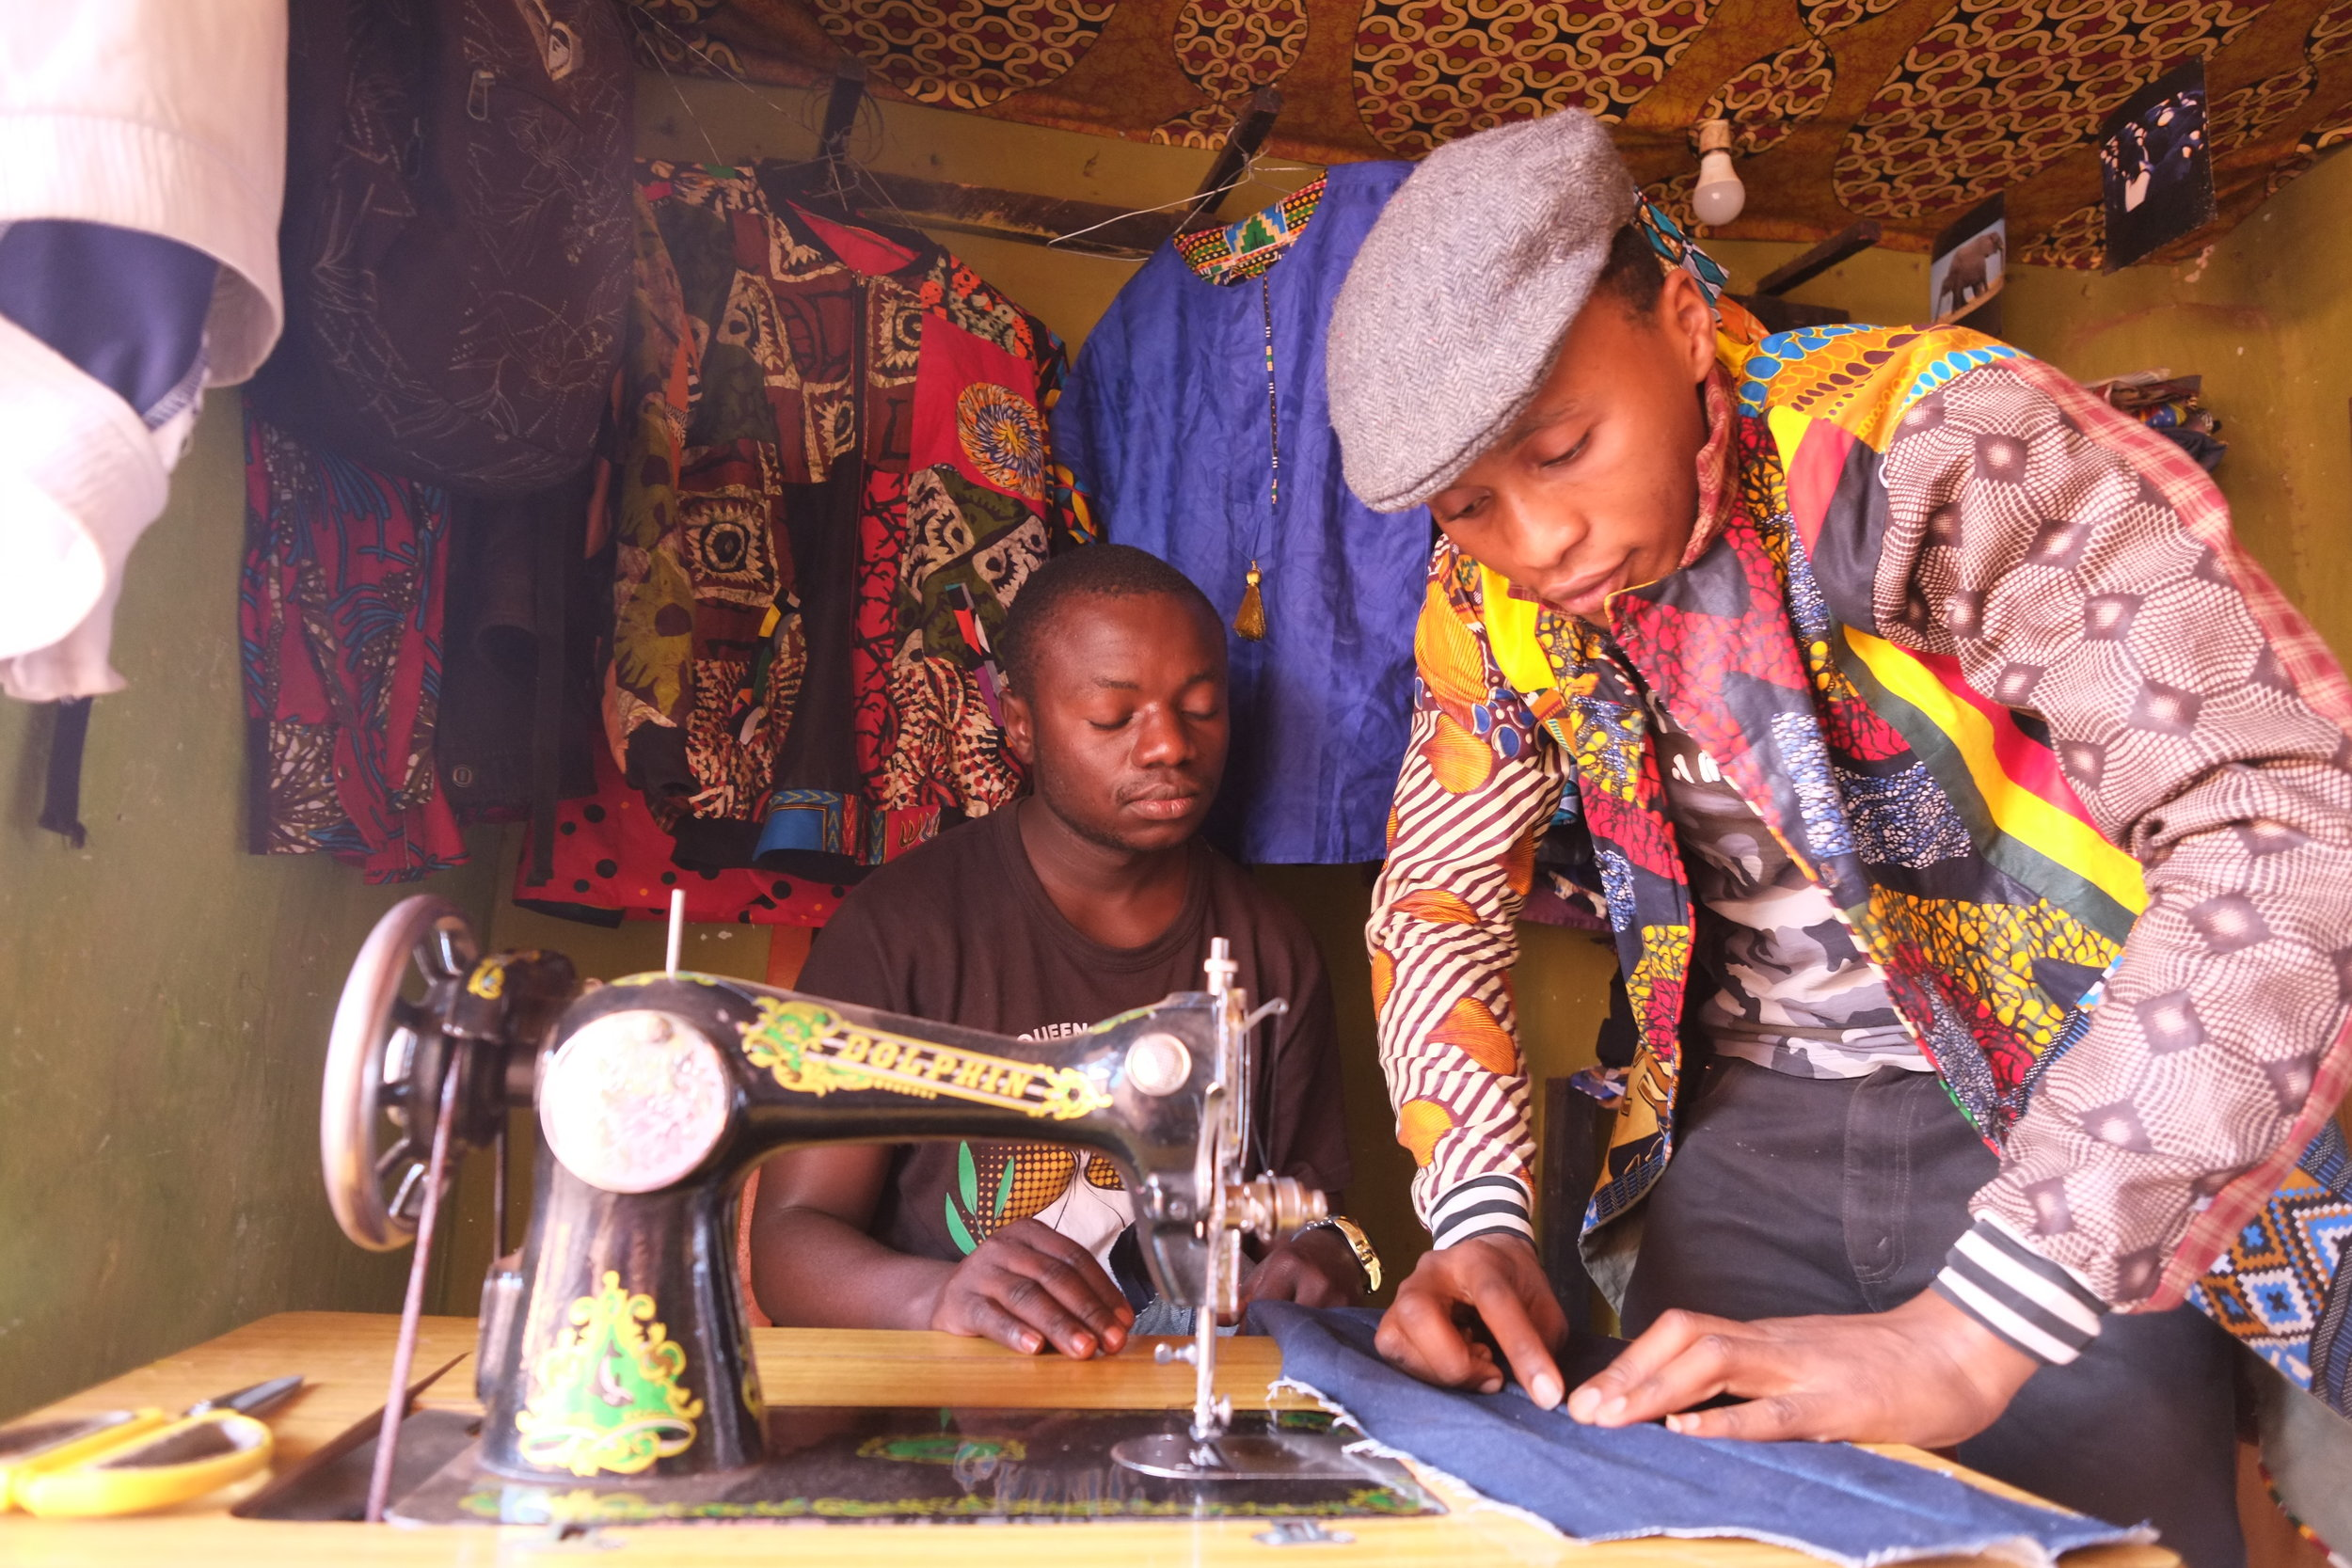 Shalex (right) makes and sells clothing at the camp. He also runs workshops teaching other refugees how to sew.